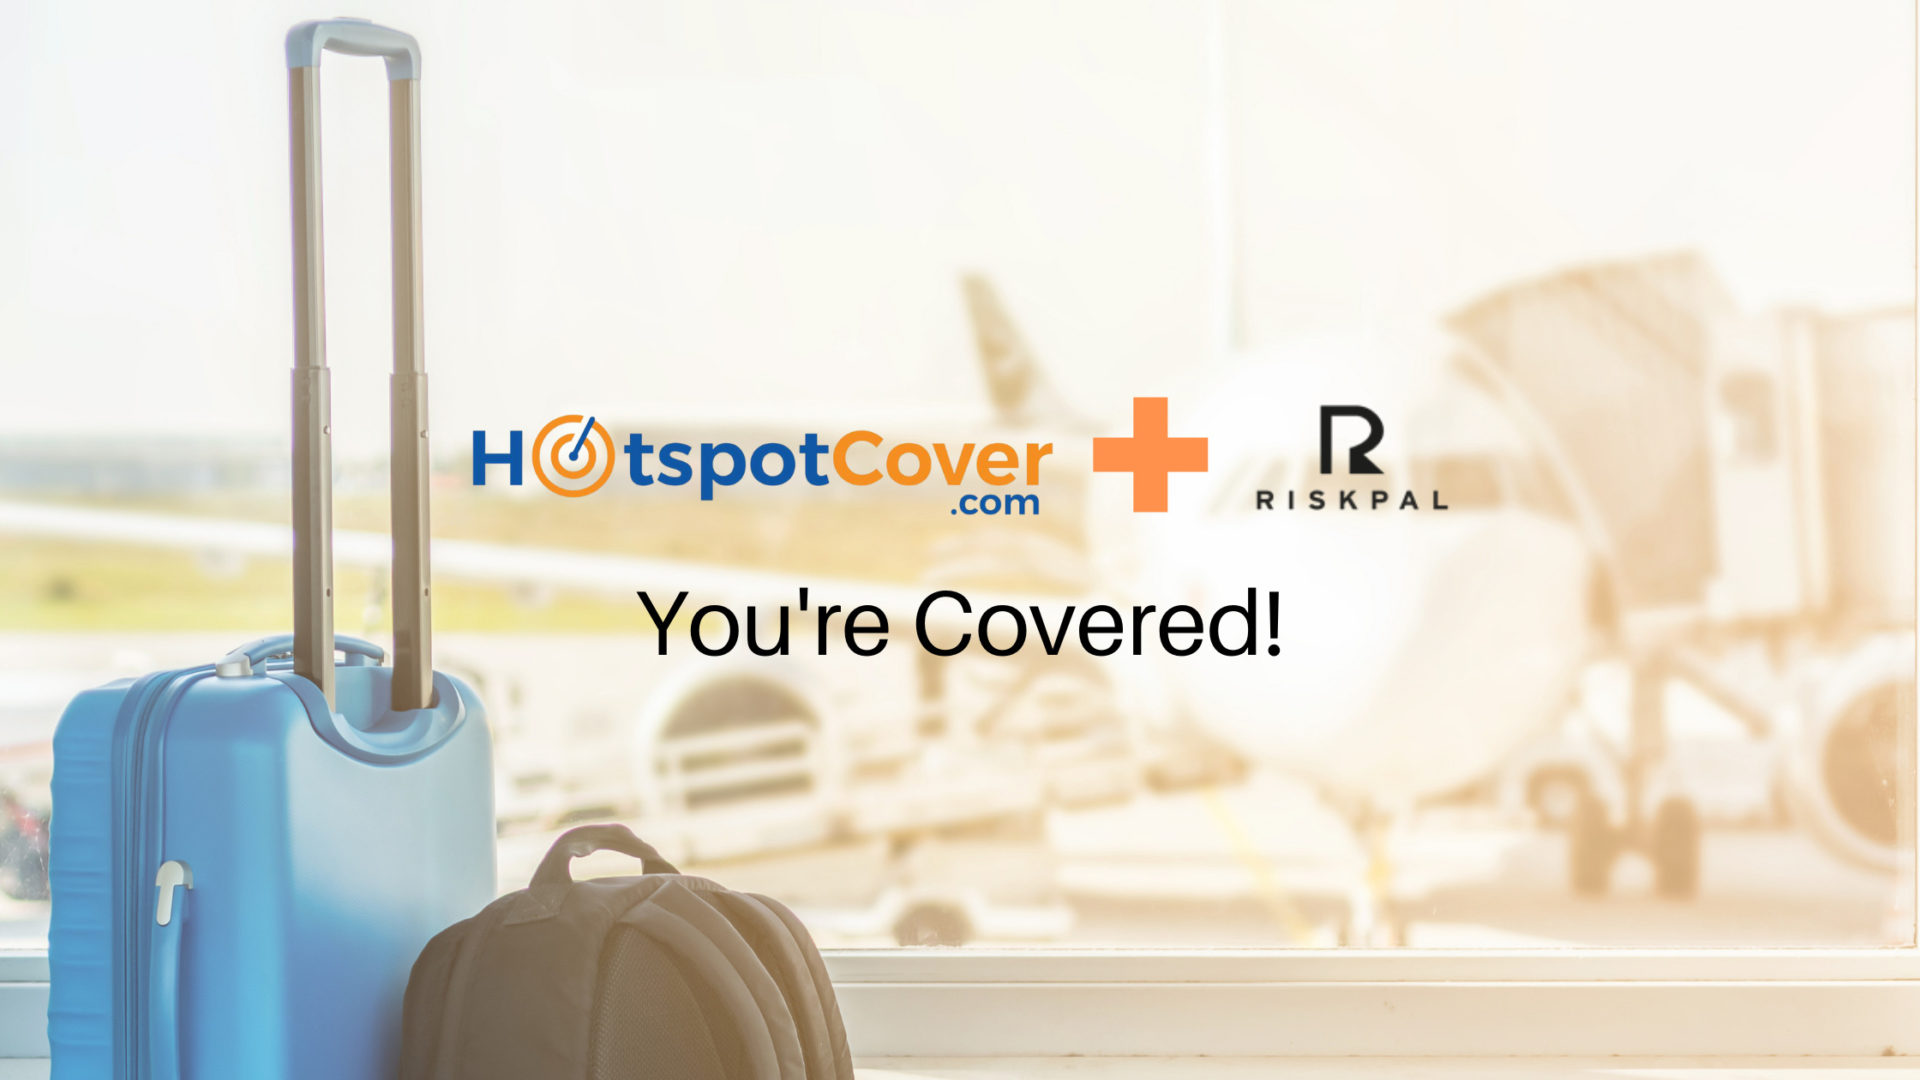 RiskPal And Hotspot Cover Travel Insurance